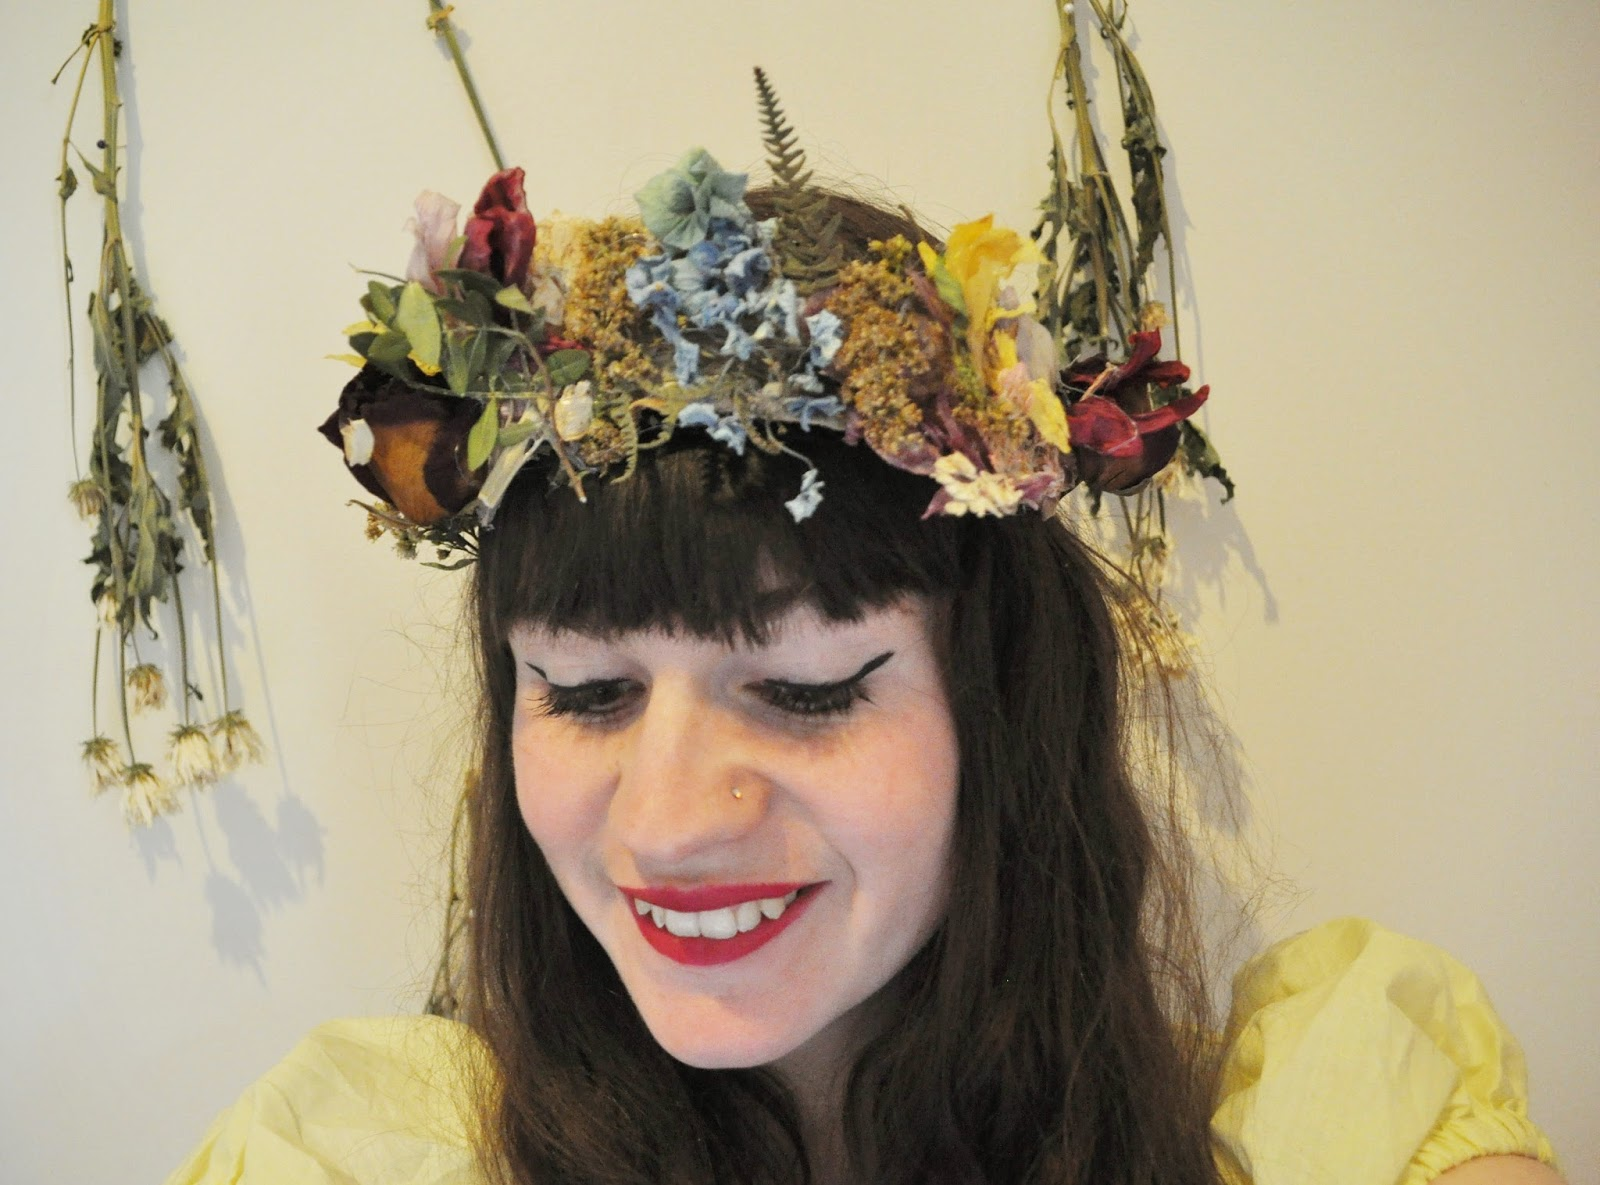 The pale female dried flower crown a bank holiday diy dried flower crown a bank holiday diy izmirmasajfo